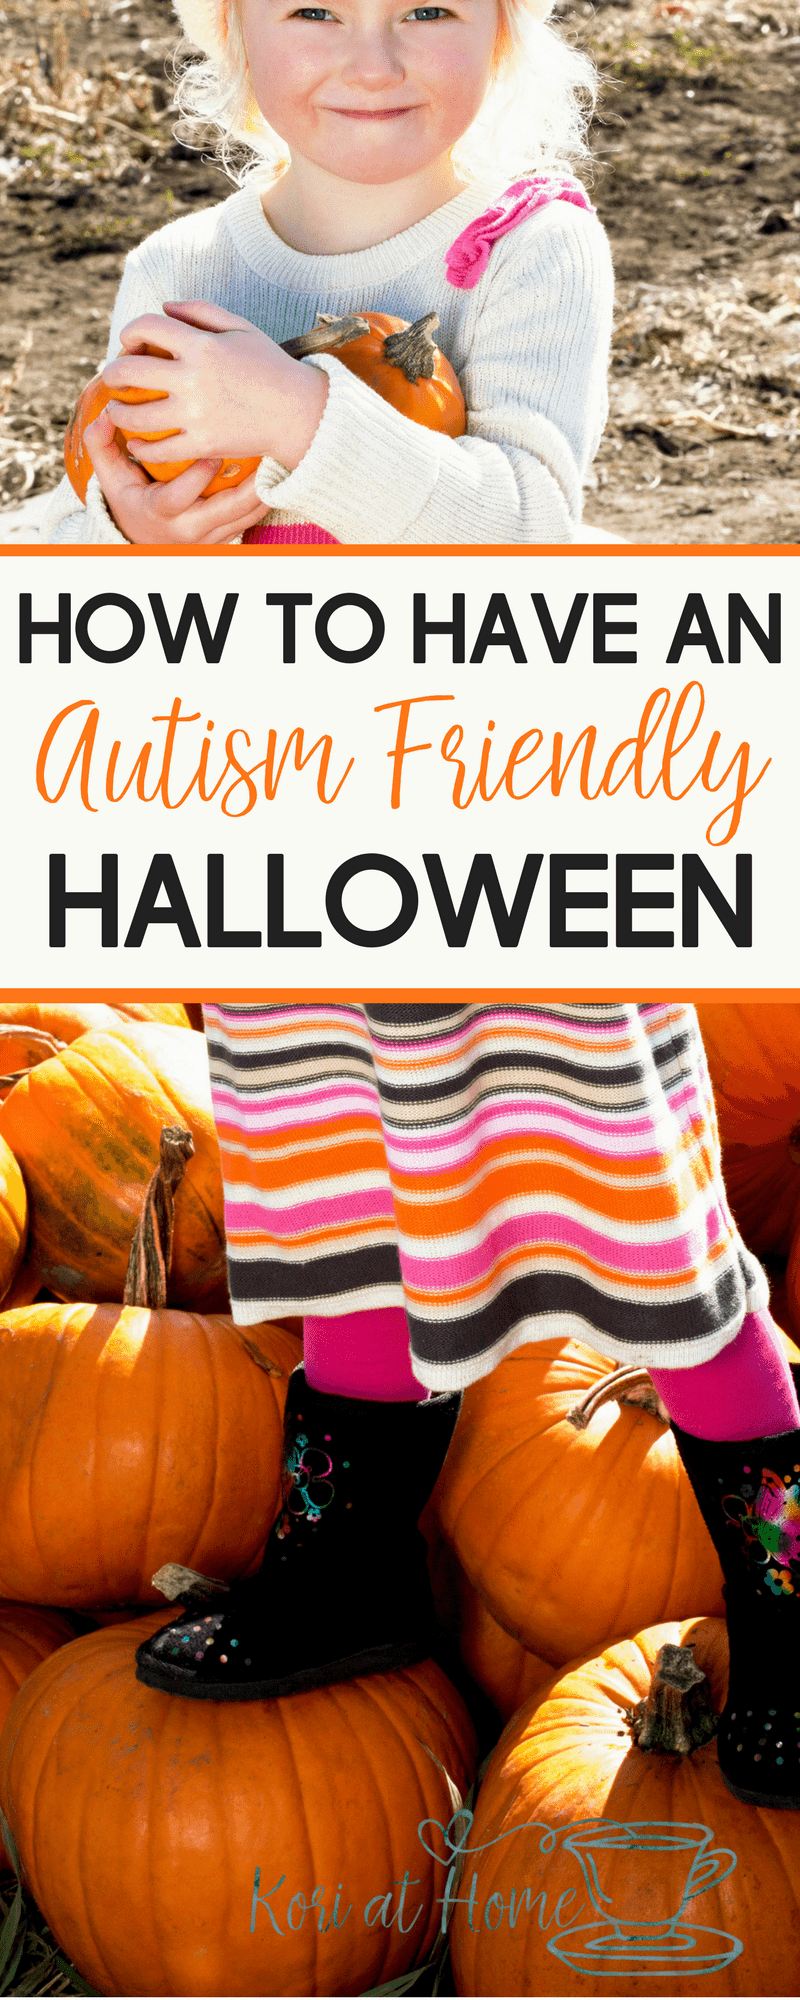 Autism Friendly Halloween 2